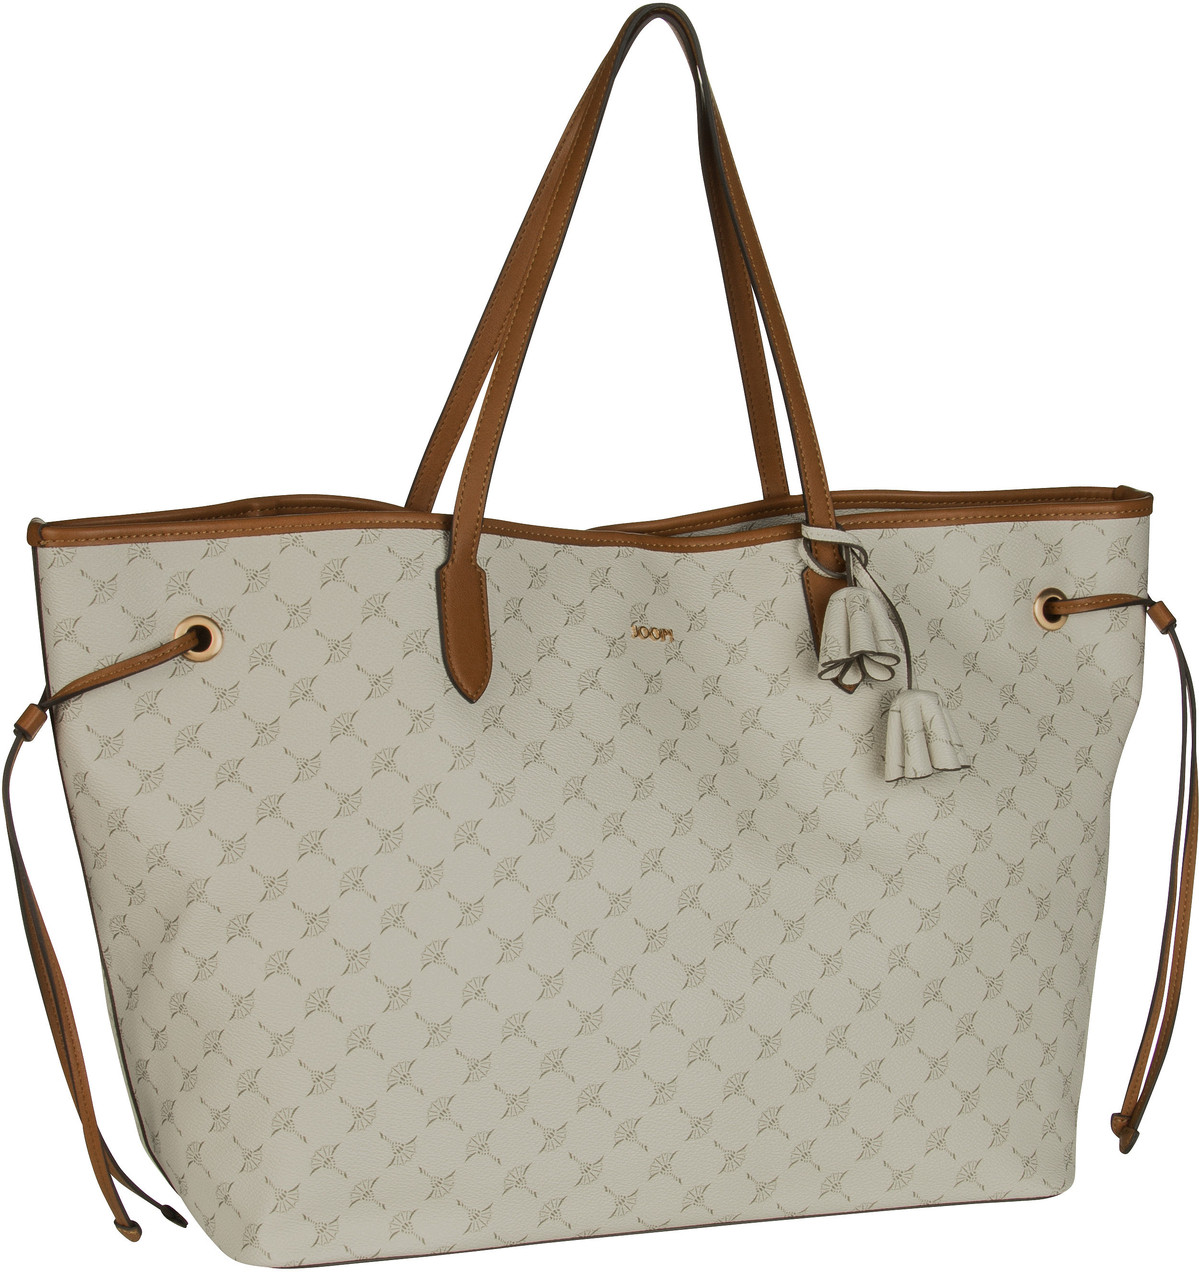 Shopper Cortina Lara Shopper XLHO Offwhite